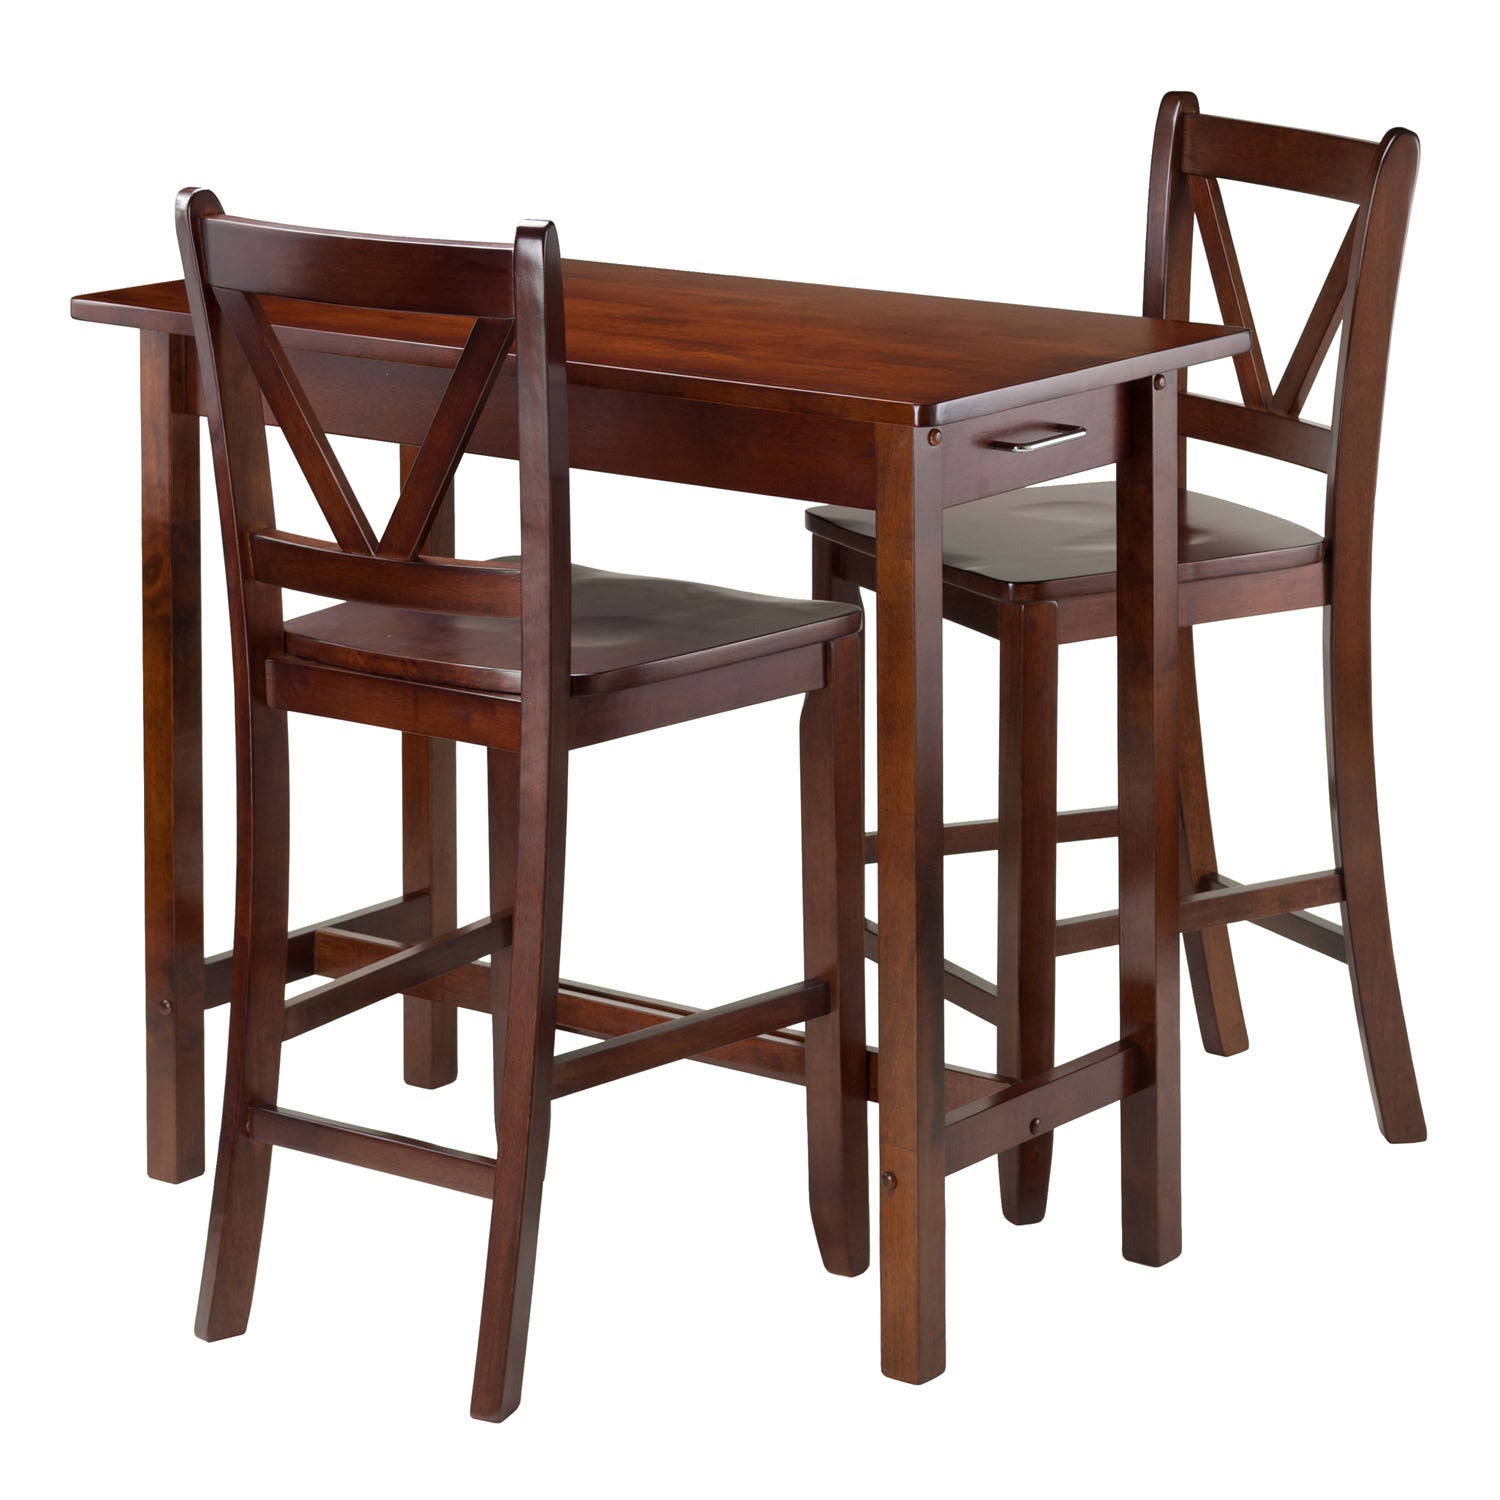 Winsome 3 Piece Island Kitchen Table With 2 V Back Counter Stools For Newest Winsome 3 Piece Counter Height Dining Sets (Photo 7 of 20)